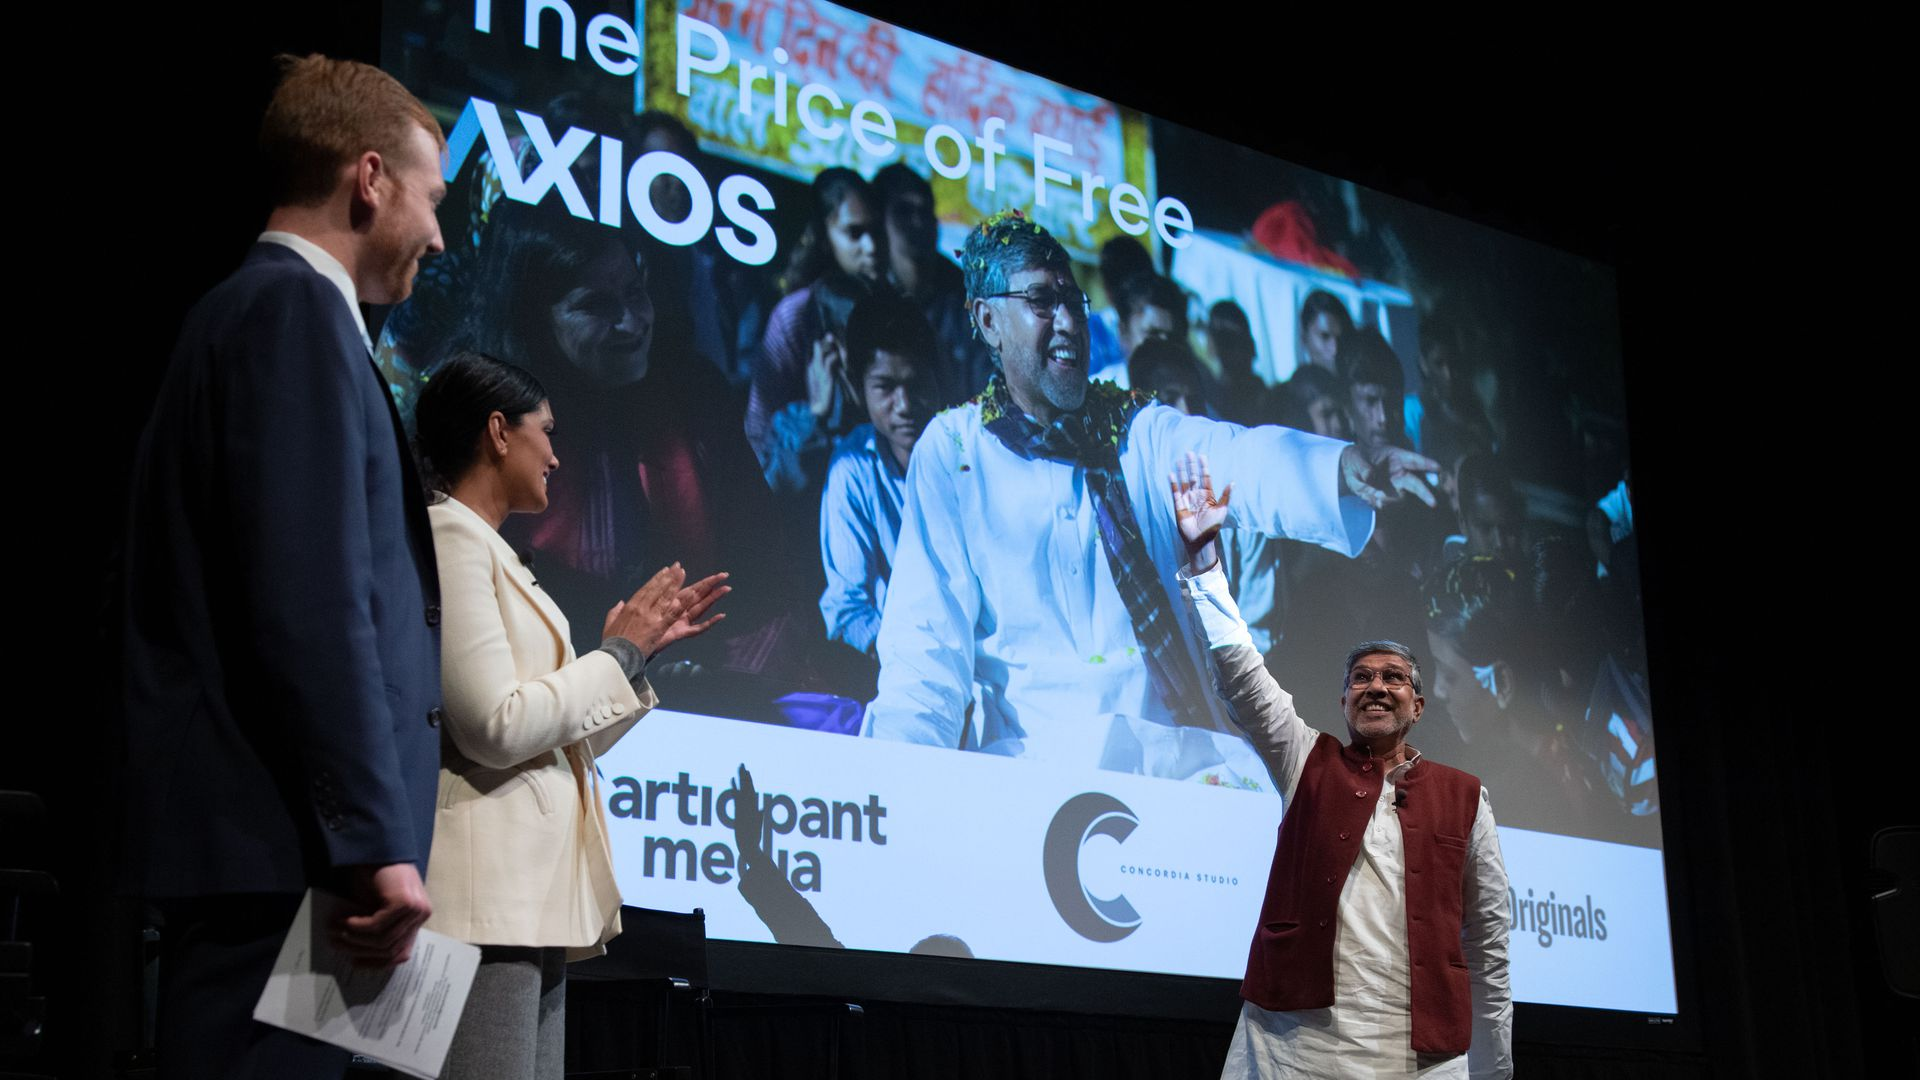 Kailash Satyarthi takes to the Axios stage waving to the crowd